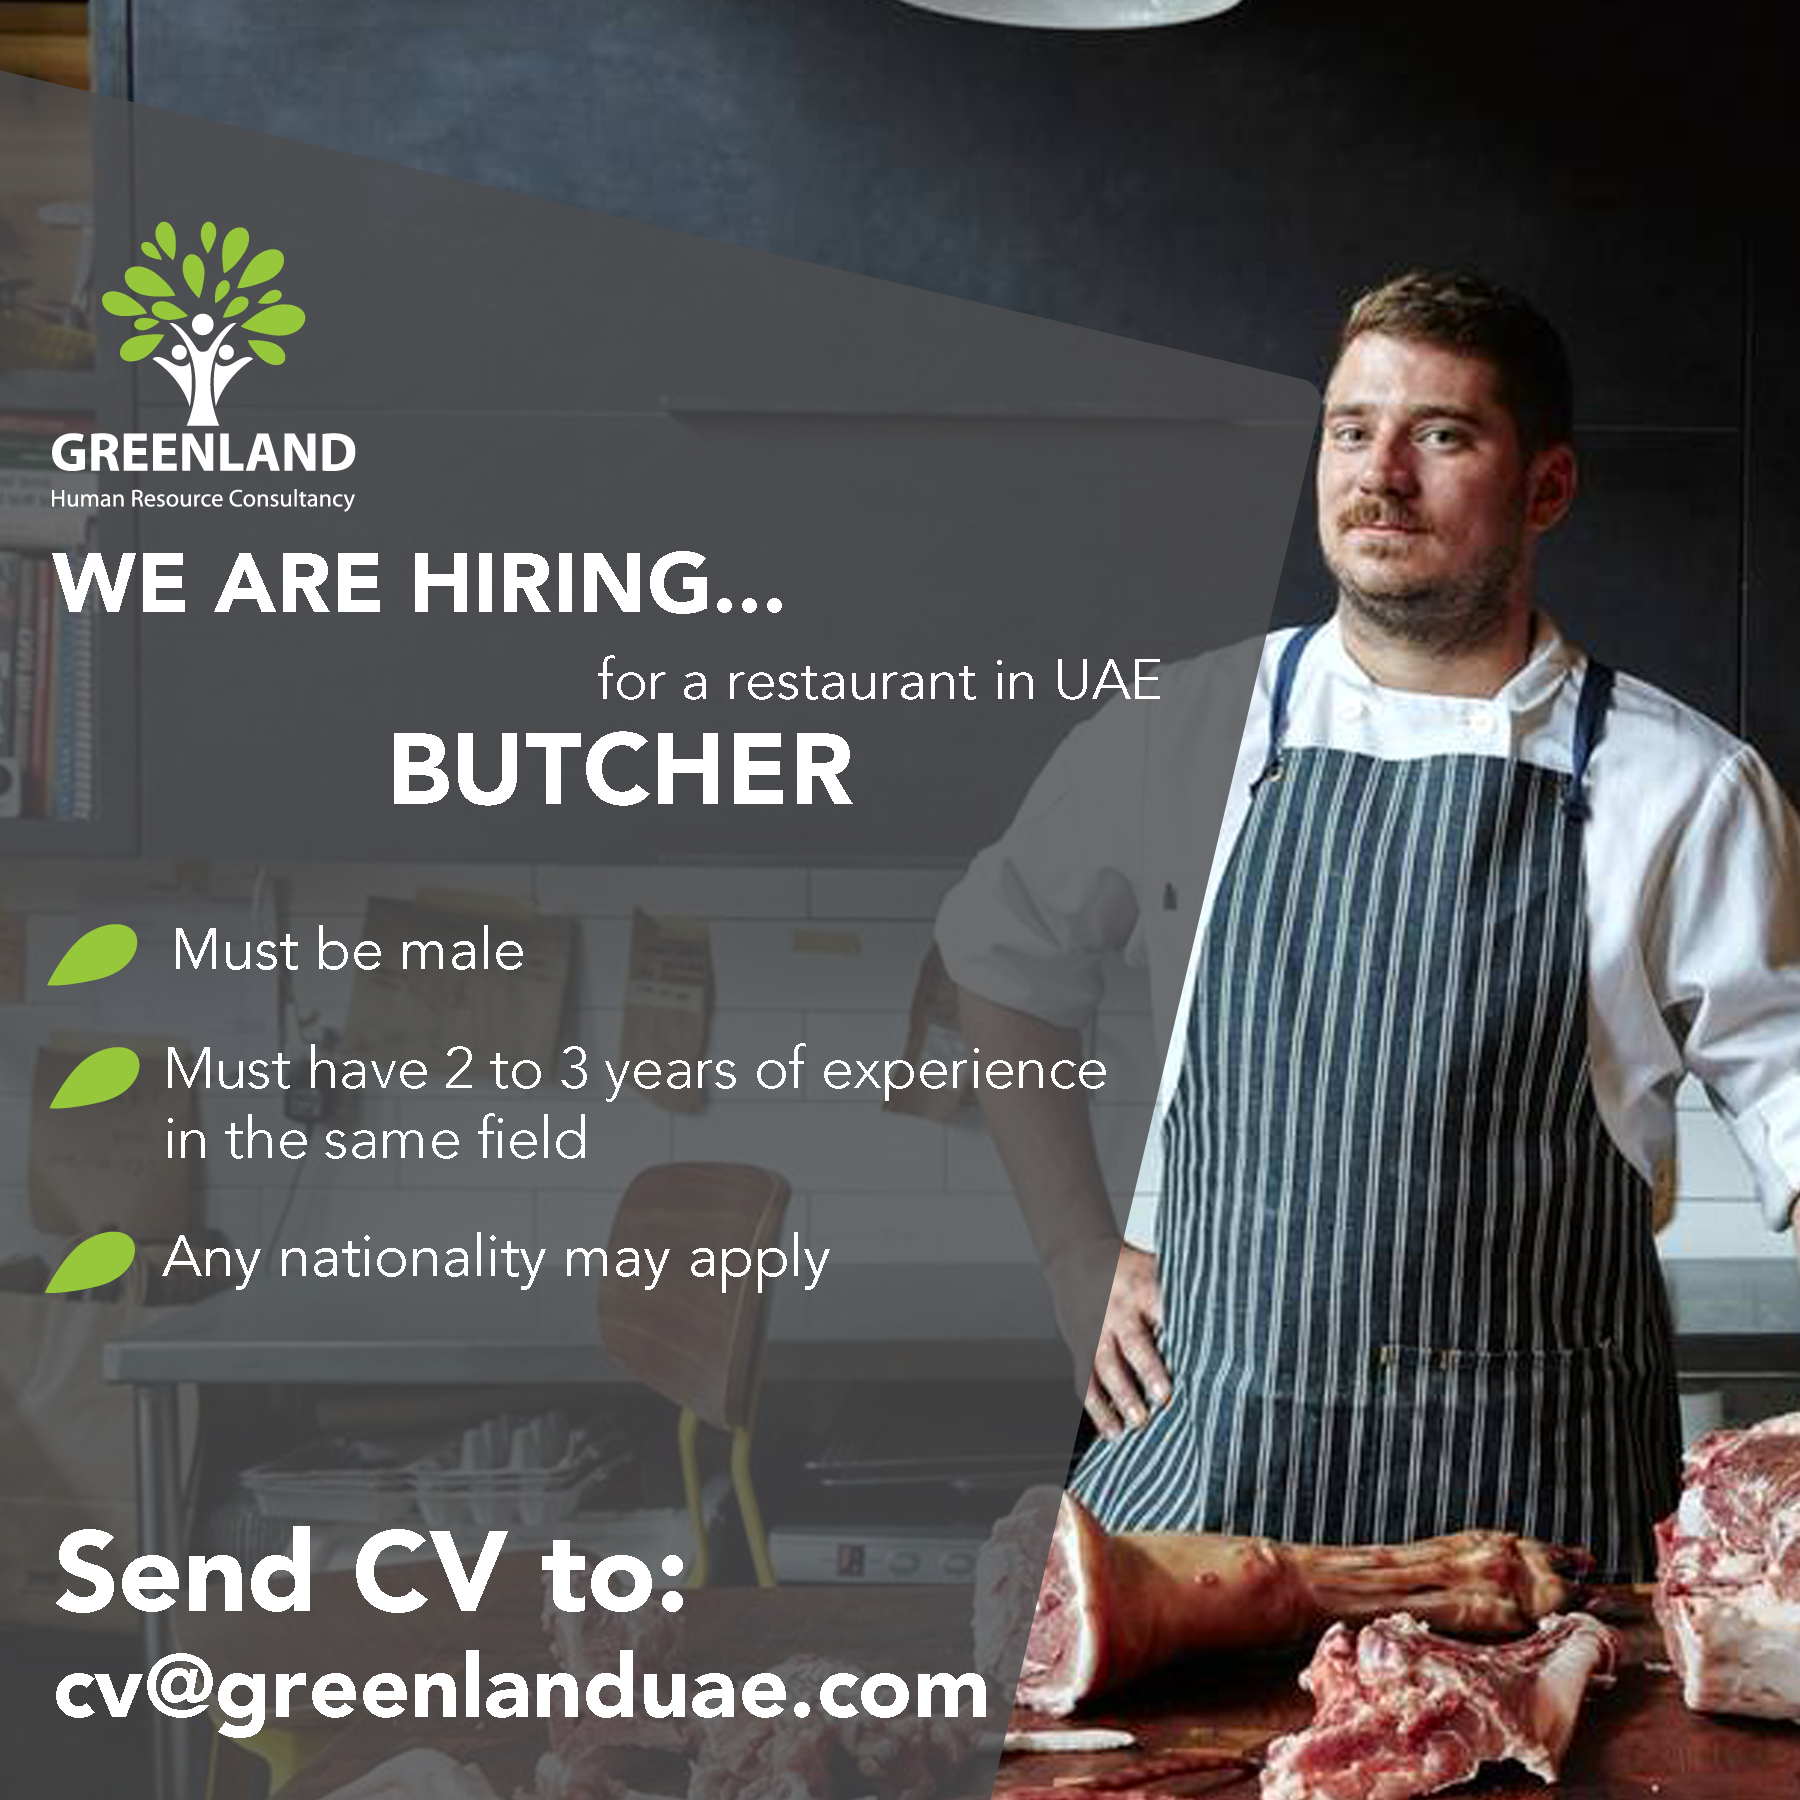 we are  hiring a butcher for a  restaurant in umm al quwain   uae ud83c udde6 ud83c uddea  ud83d udc66 ud83c udffbmust be male  ud83c udf56must have 2